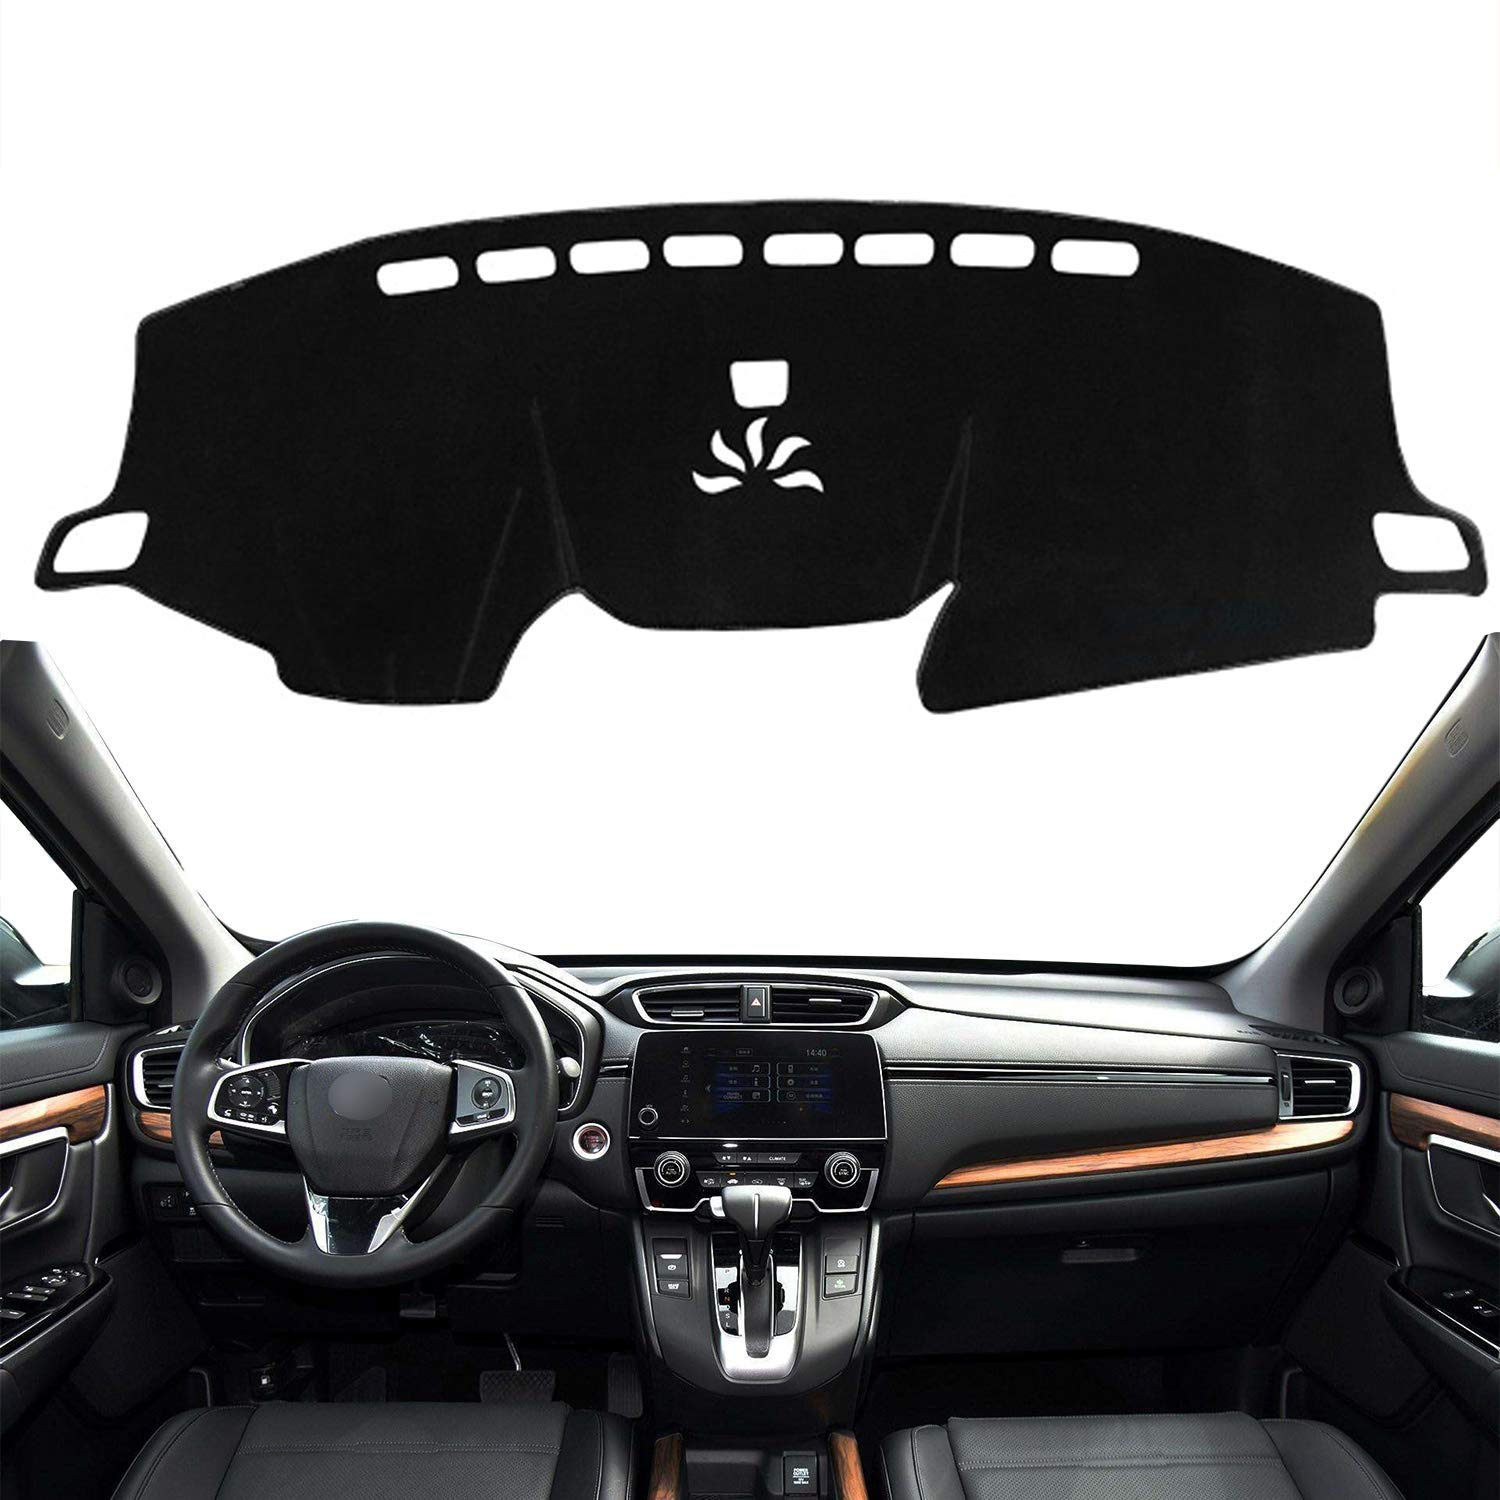 Custom Fit Dashboard Black Center Console Cover Dash Mat Protector Sunshield Cover for 2017 2018 2019 Honda CRV CR-V SUV without HUD AutofitPro